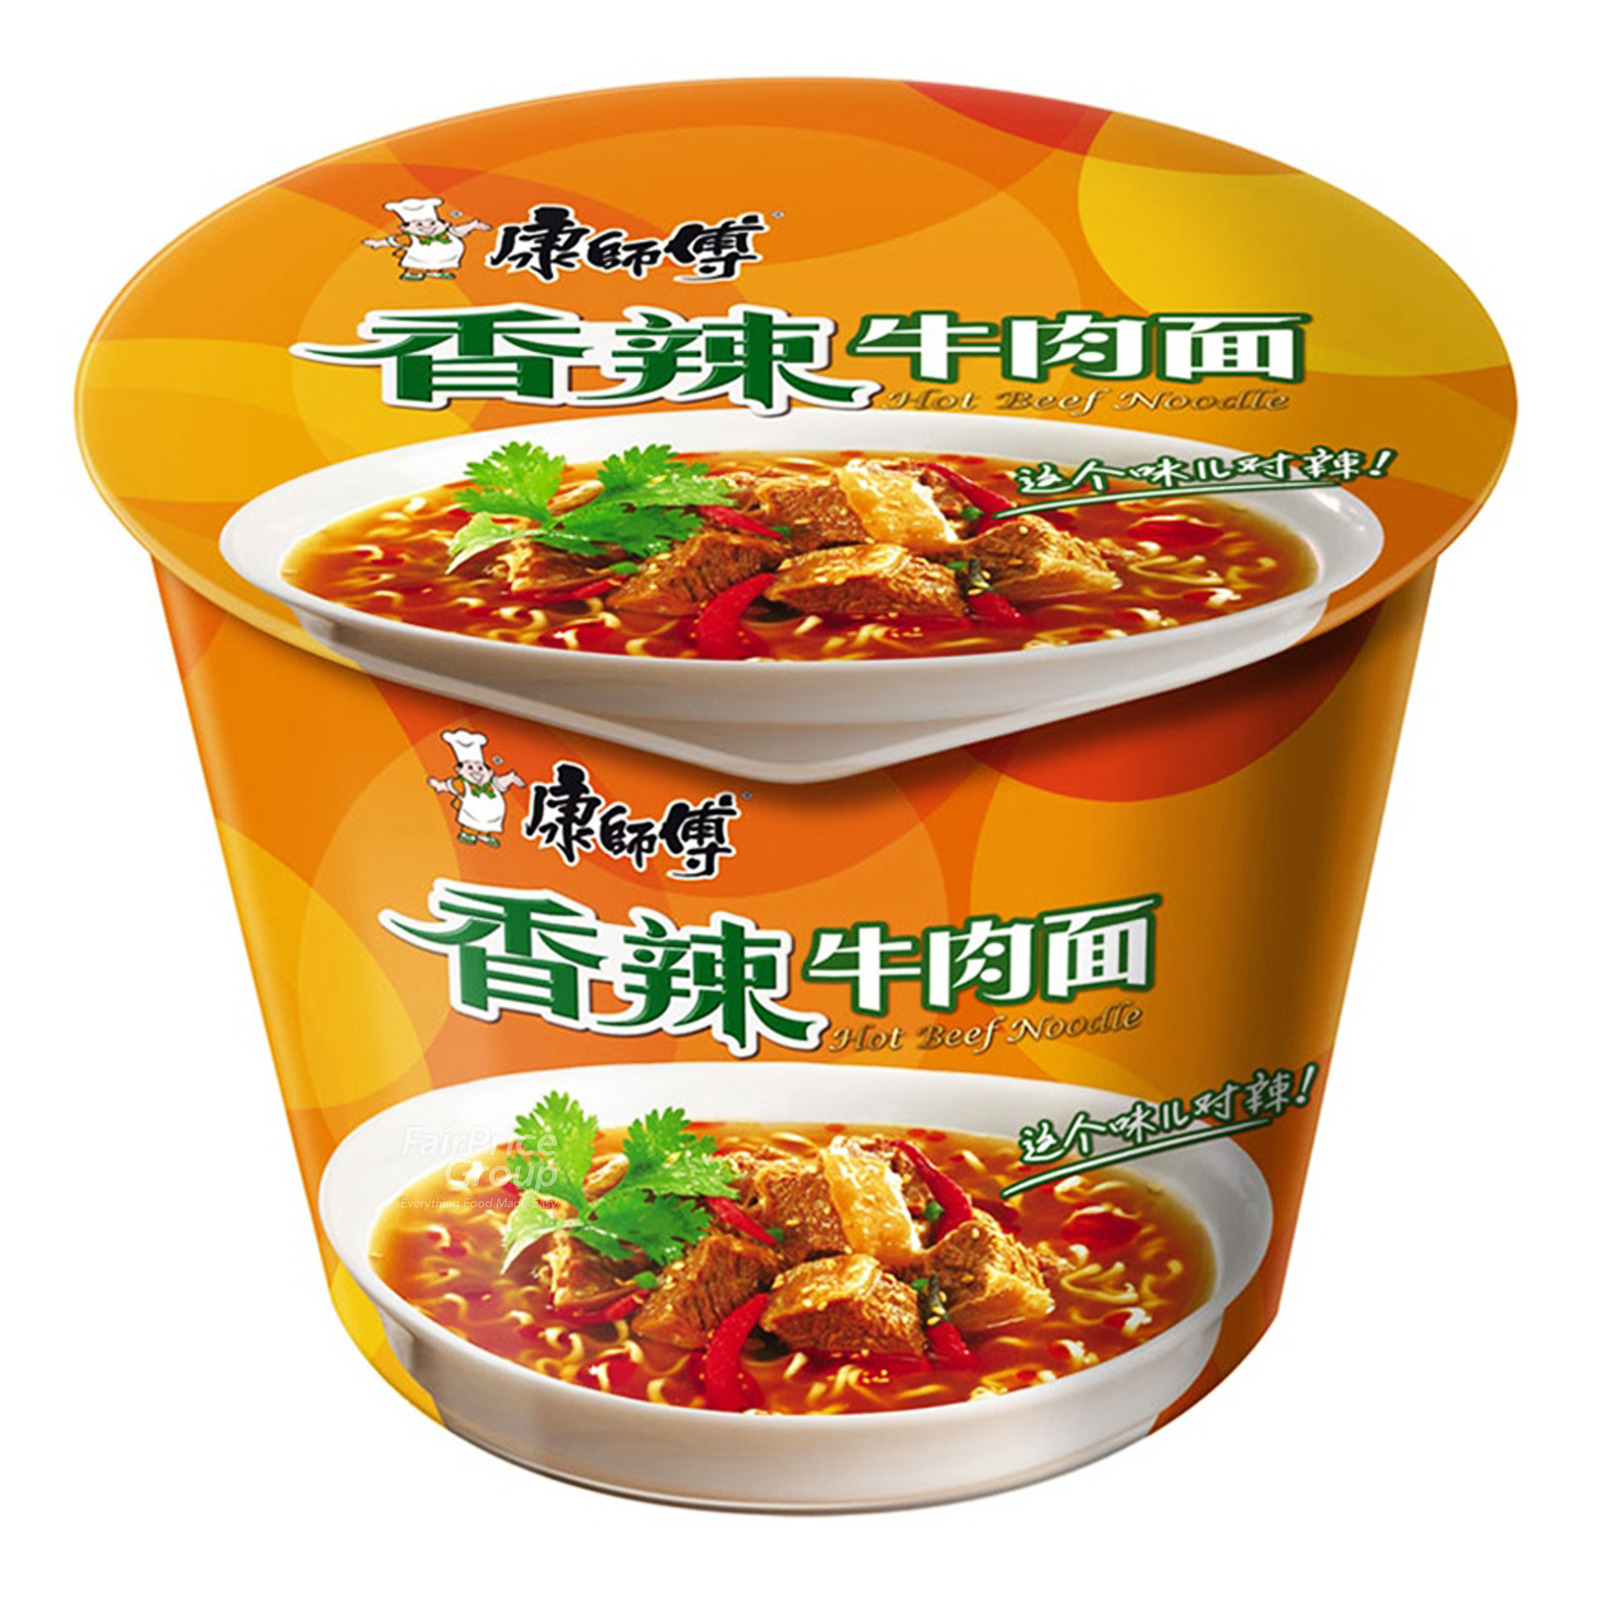 Kang Shi Fu Instant Bowl Noodle - Hot Spicy